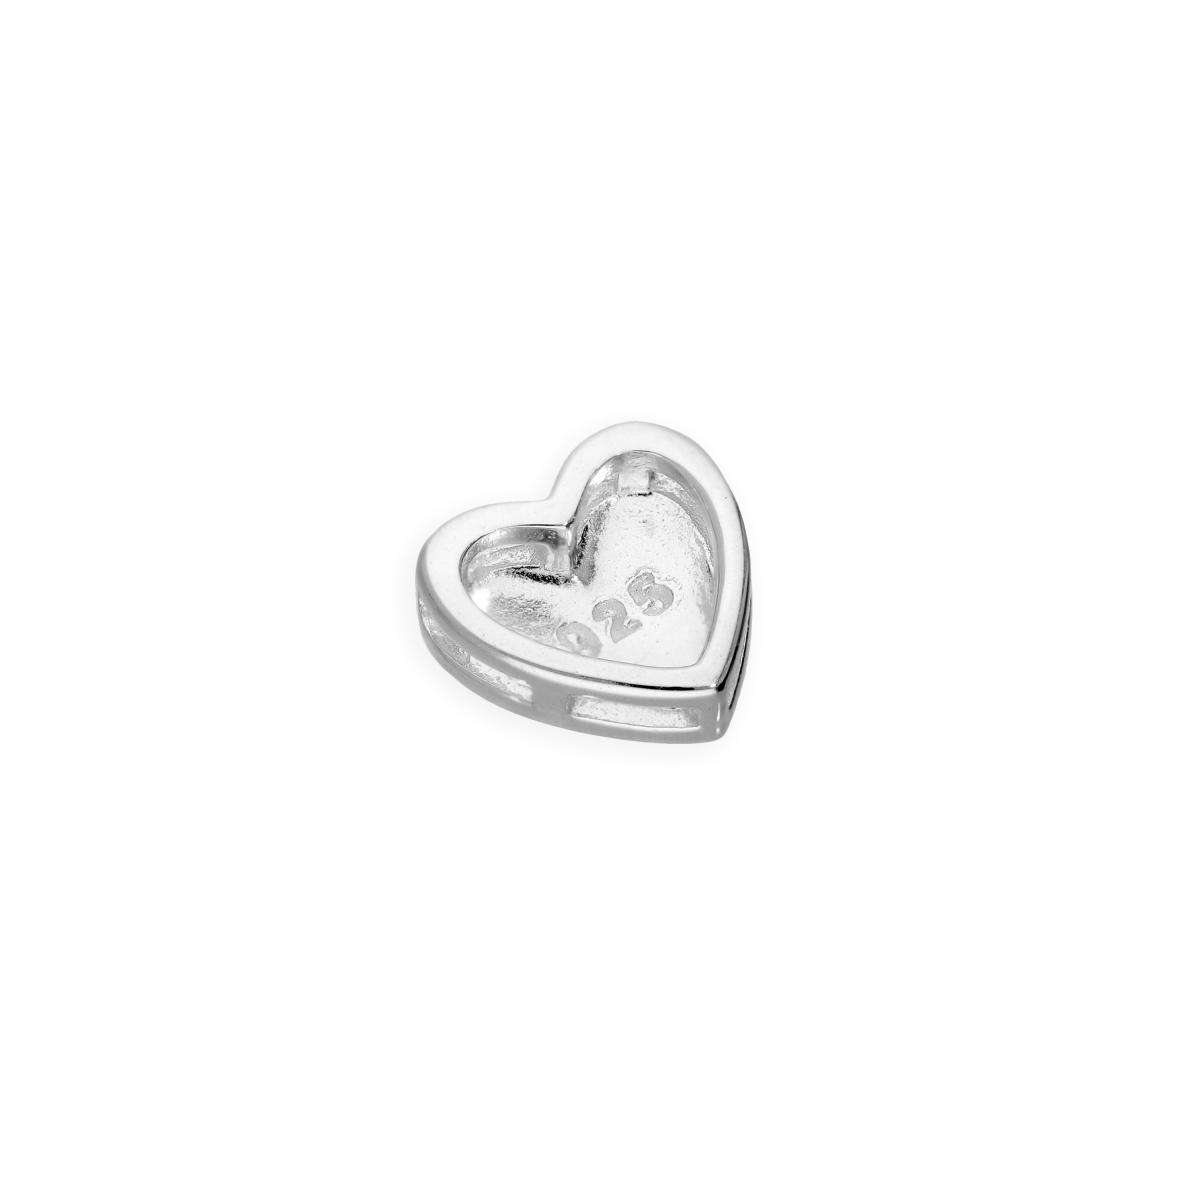 Alterative image for Sterling Silver Floating Heart Charm